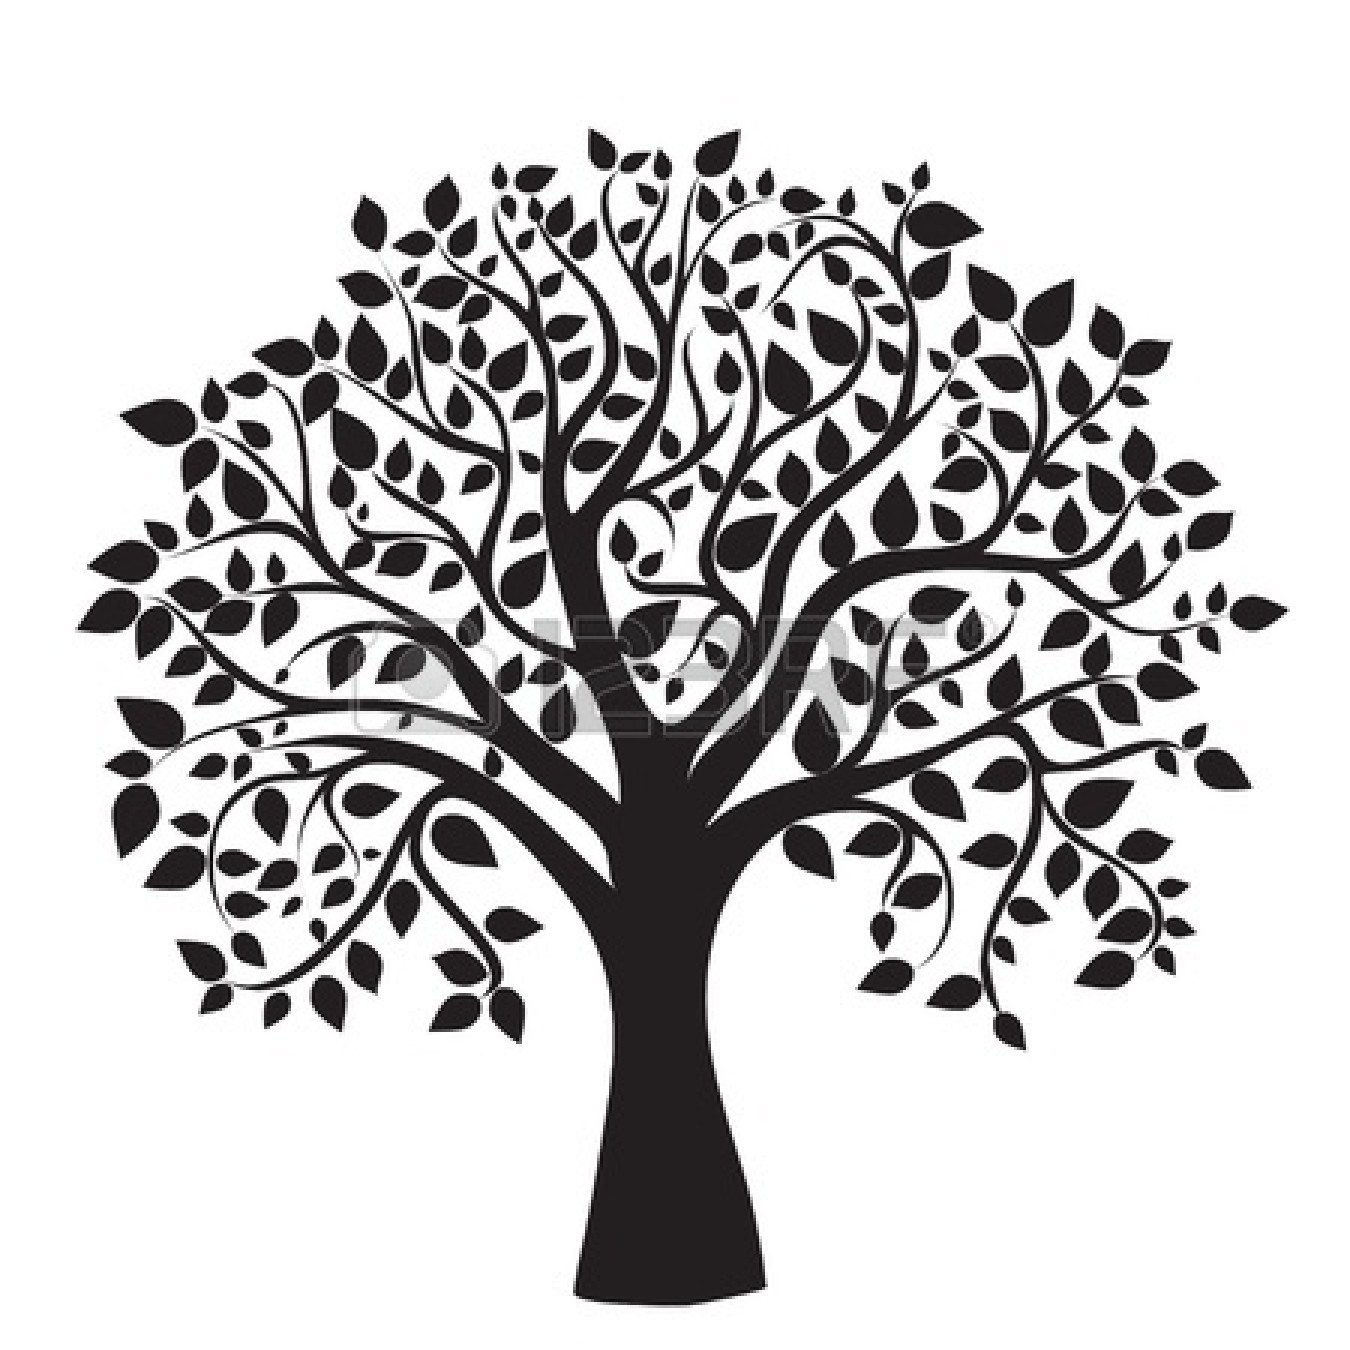 Free Tree Clipart Animations Of Trees 2 Image 714